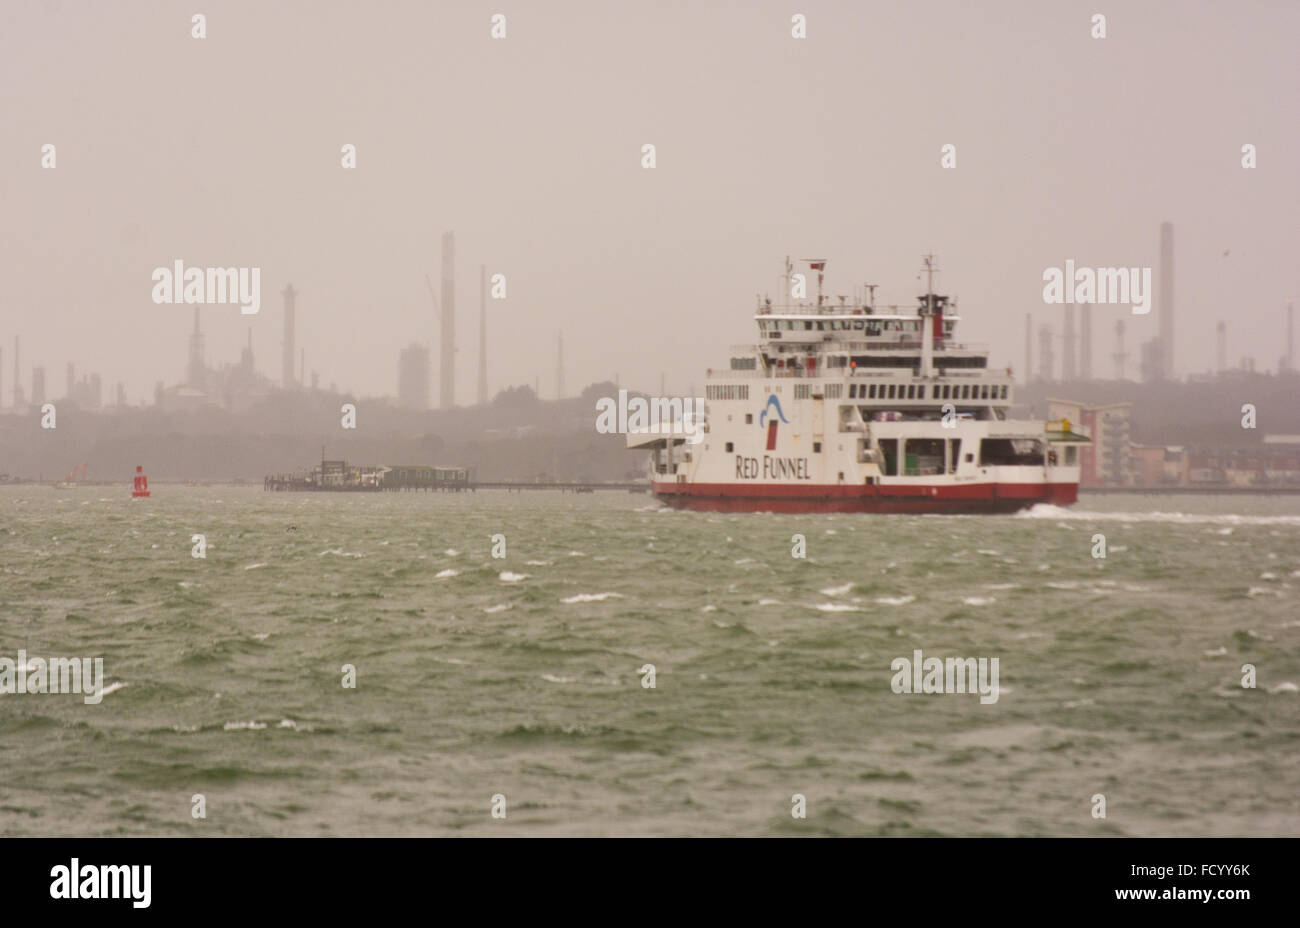 Southampton, Hampshire, UK, January weather. Choppy seas for a Red Funnel Isle of Wight ferry crossing the Solent - Stock Image